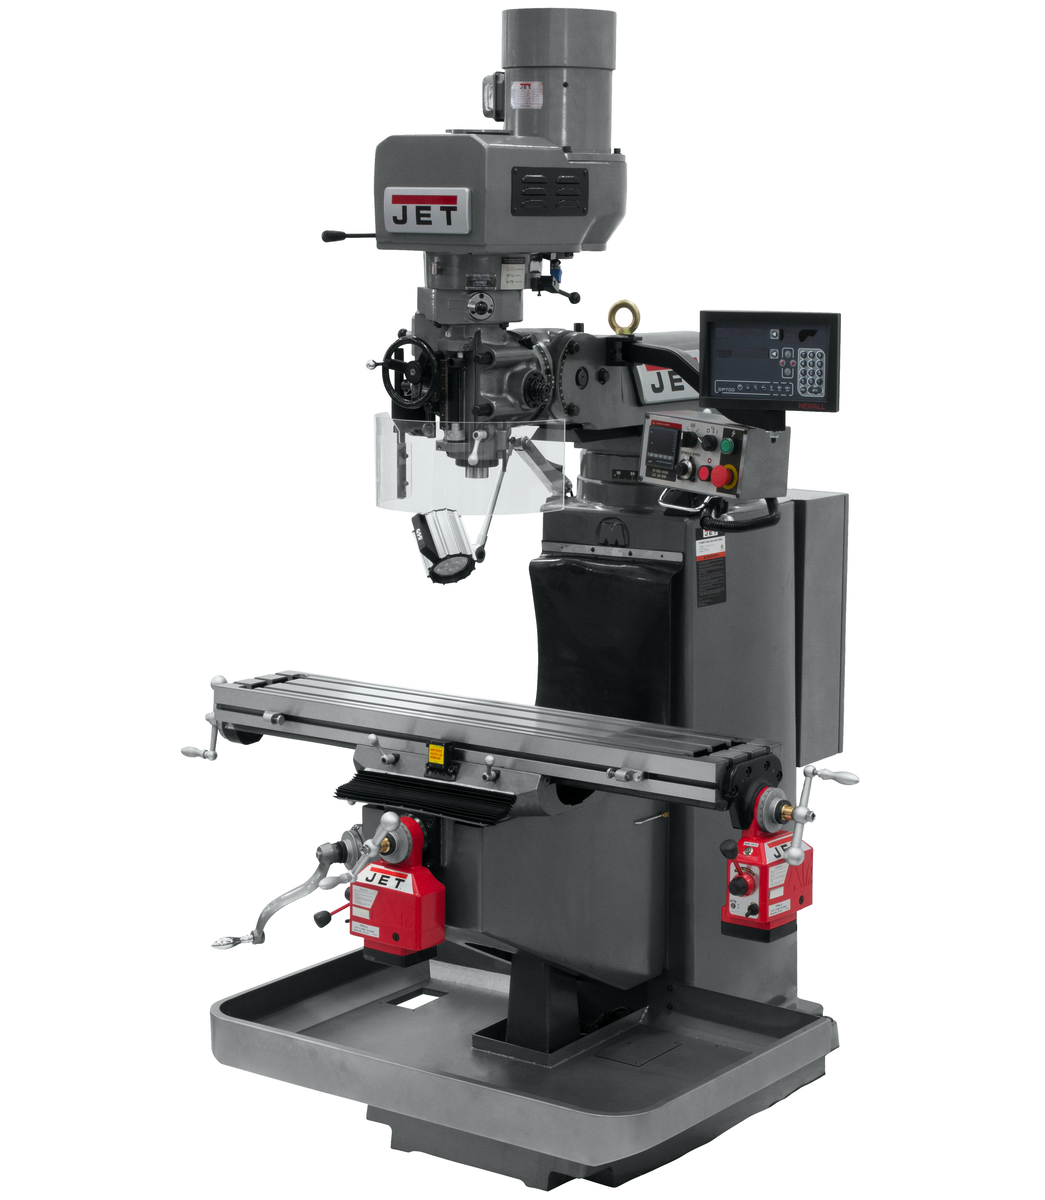 JTM-949EVS Mill With 3-Axis Newall DP700 DRO (Quill) With X and Y-Axis Powerfeeds